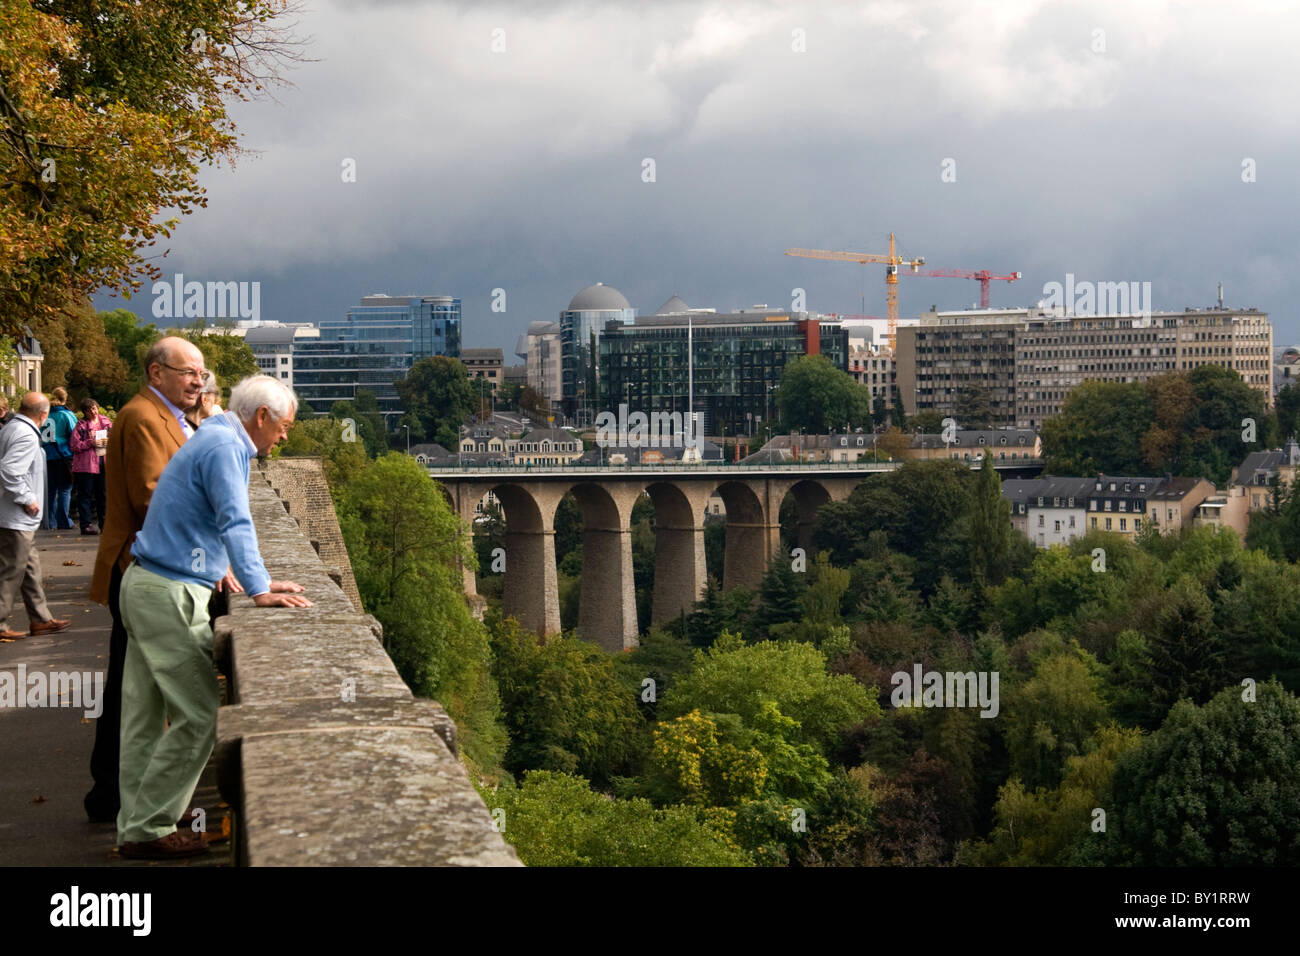 The Passerelle viaduct in Luxembourg City, Luxembourg. - Stock Image